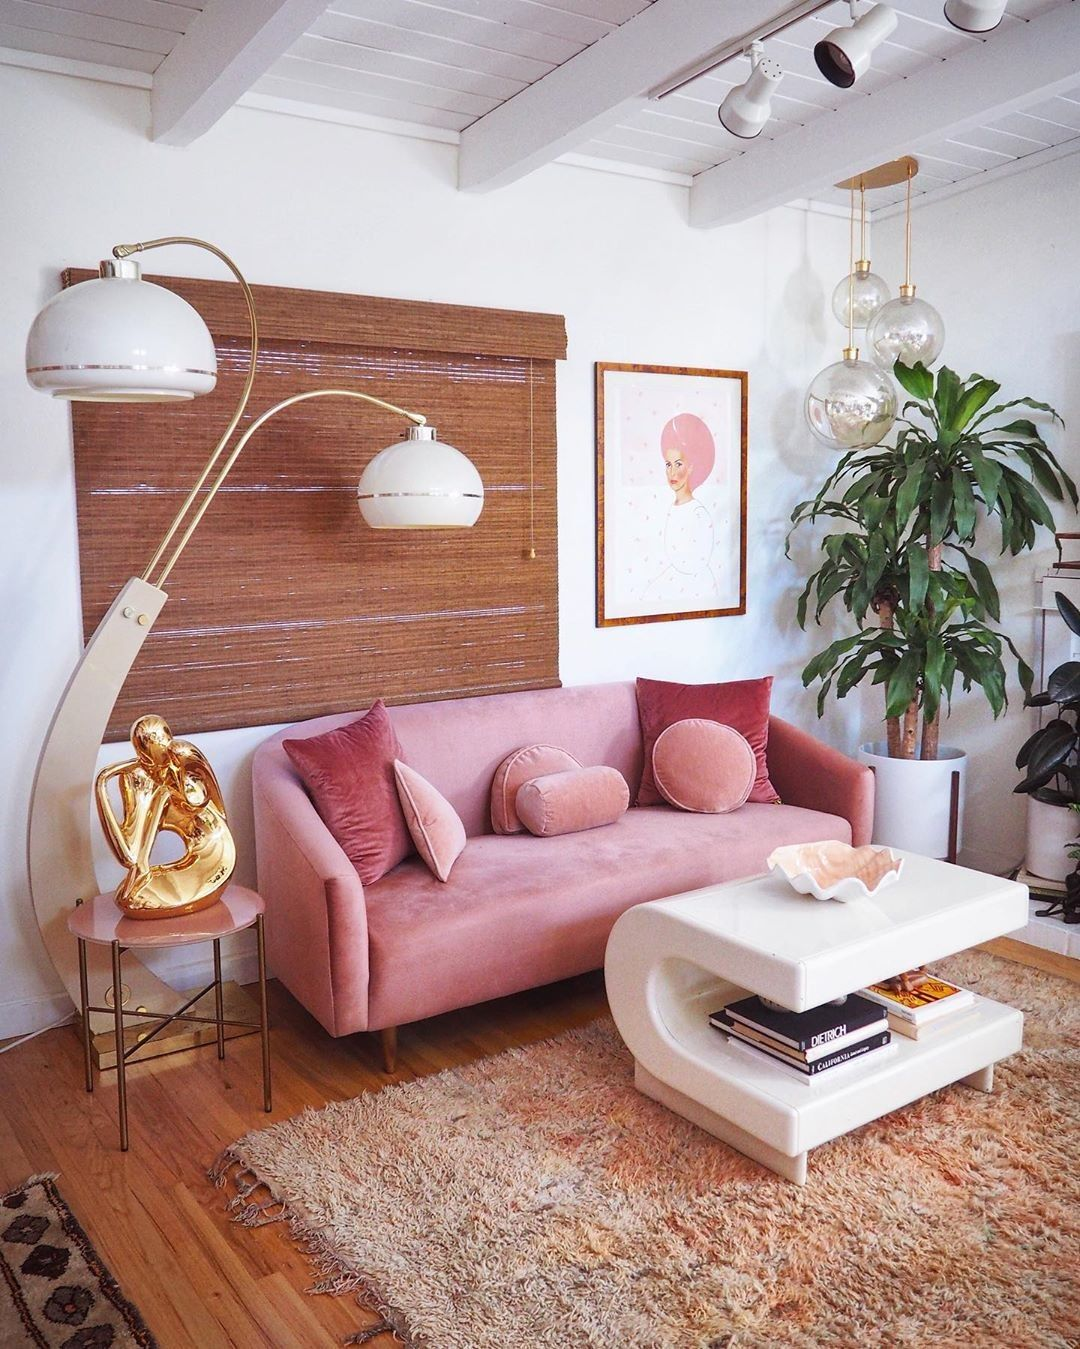 living room, wooden floor, white wall, curvy floor lamp, pink velvety sofa, pink side table, glass pendants, white C shaped coffee table, brown rug